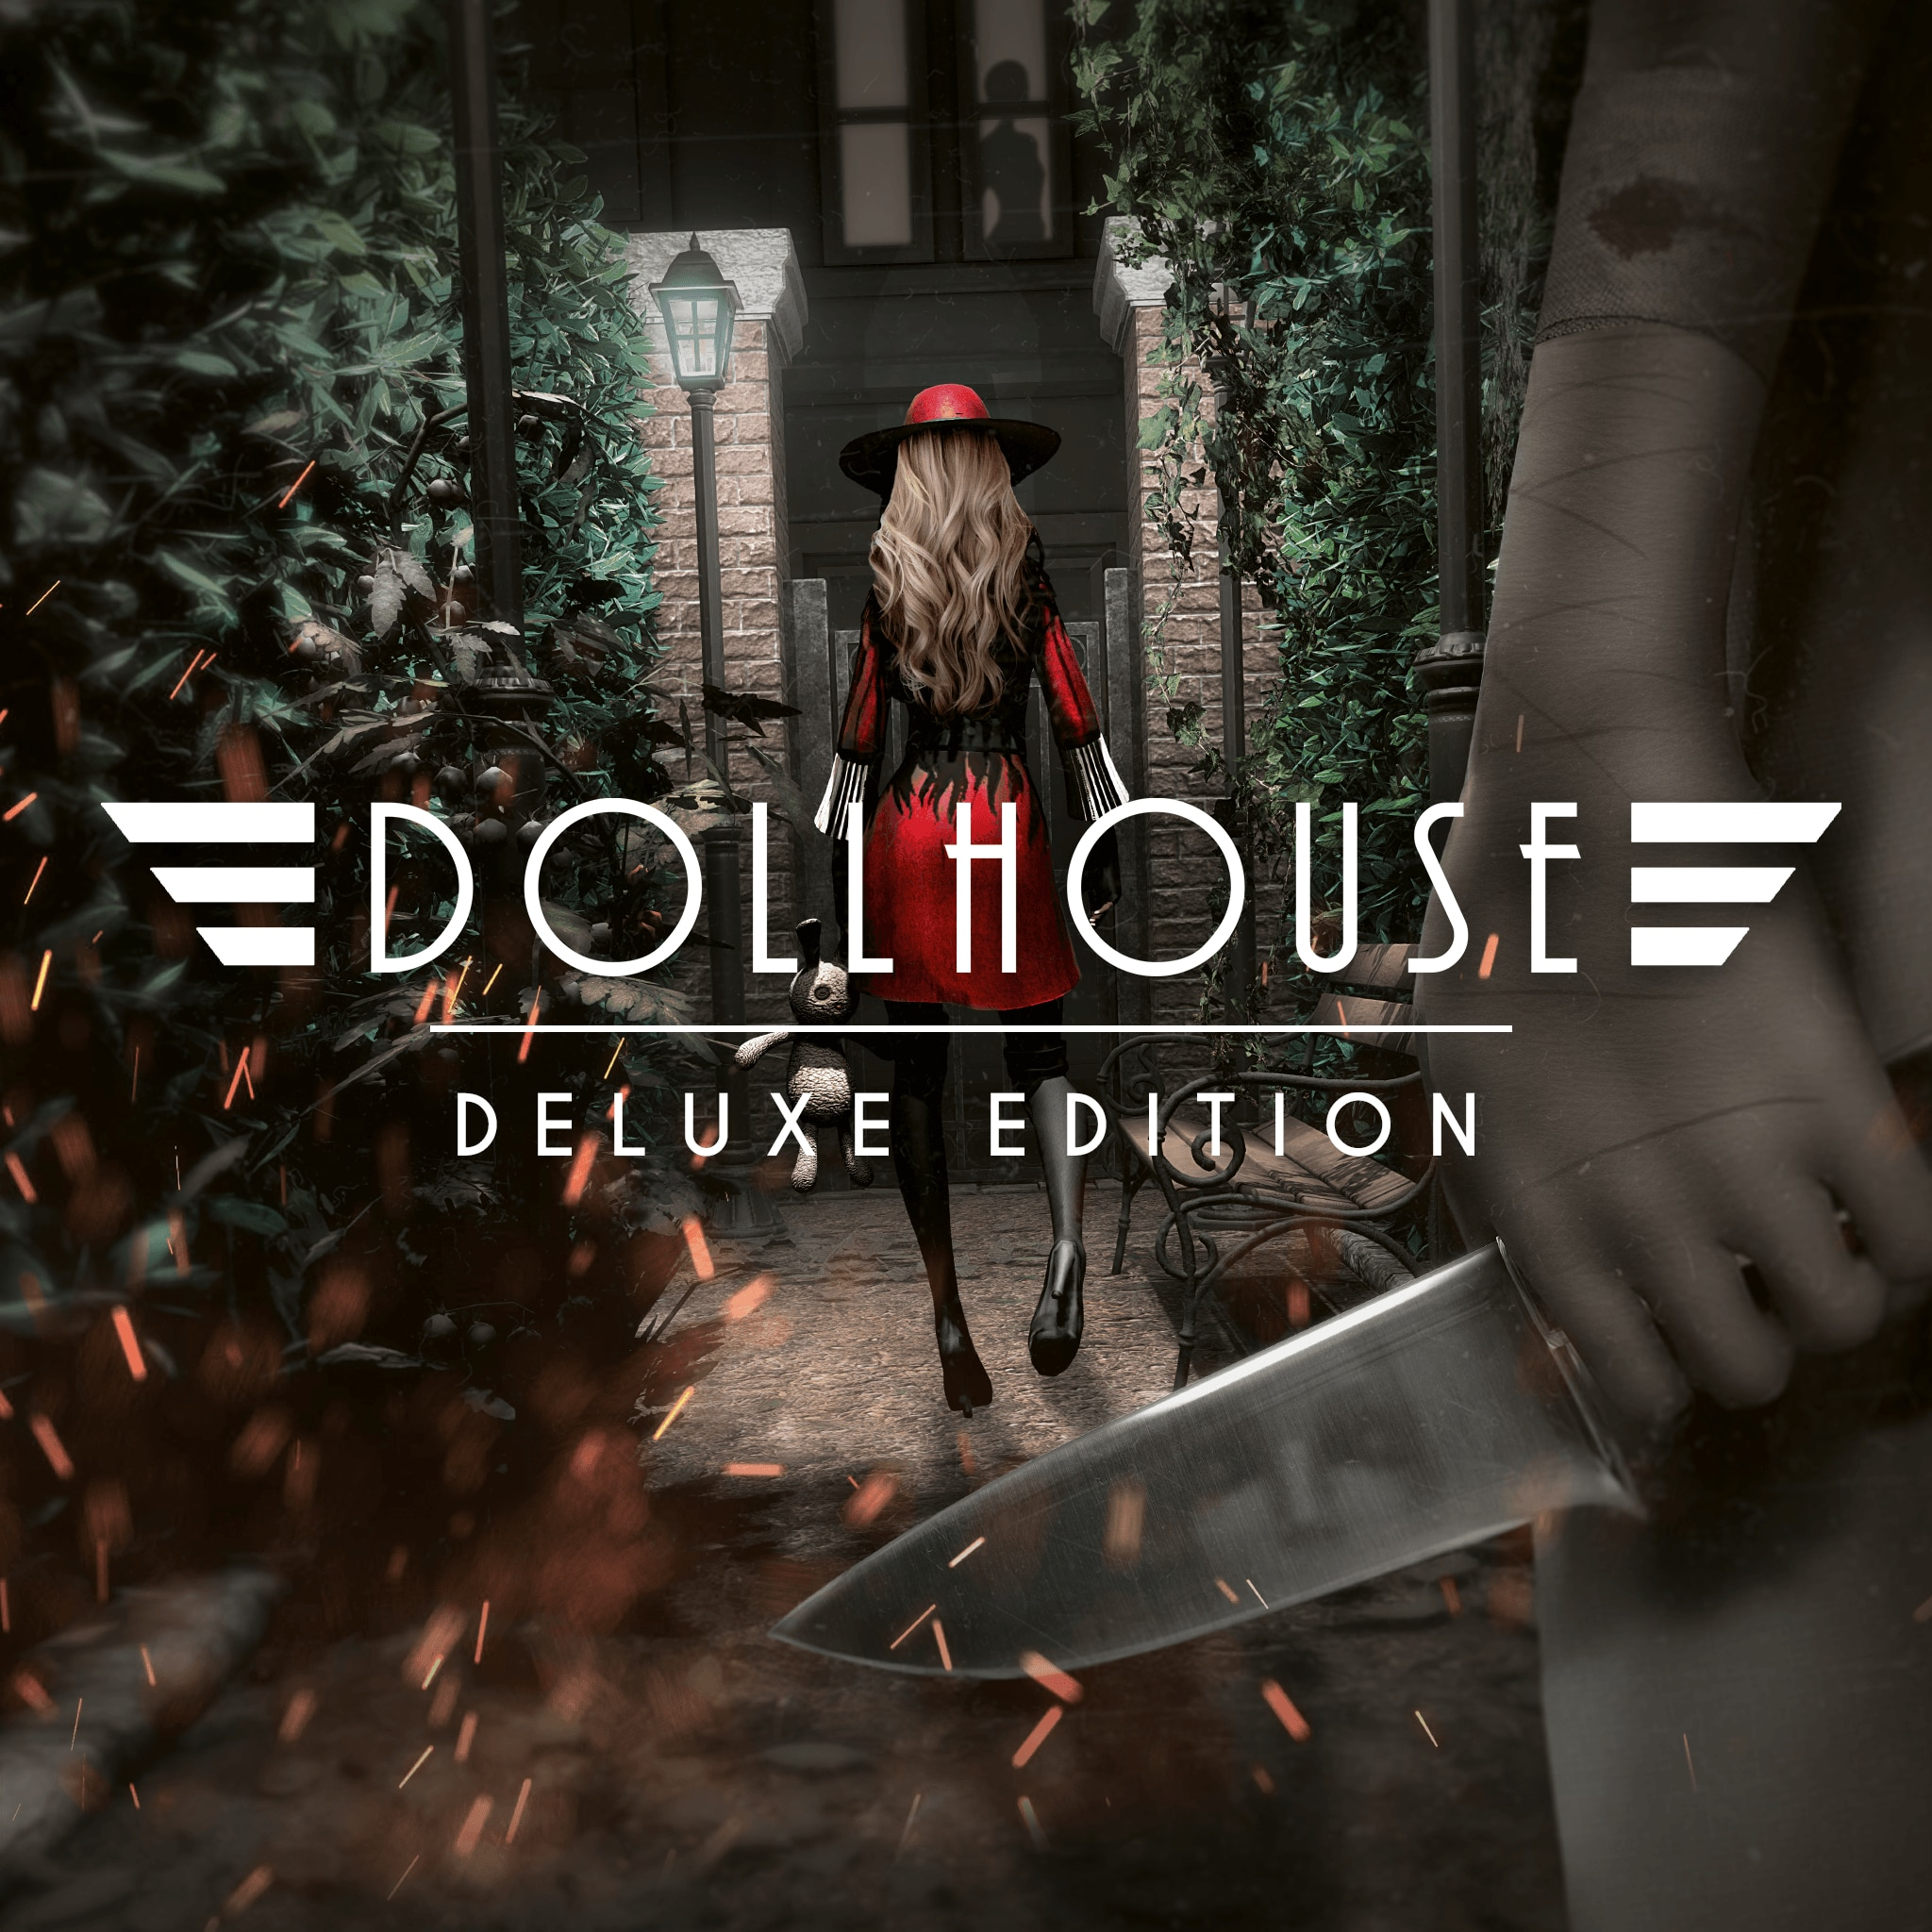 Dollhouse - Deluxe Edition